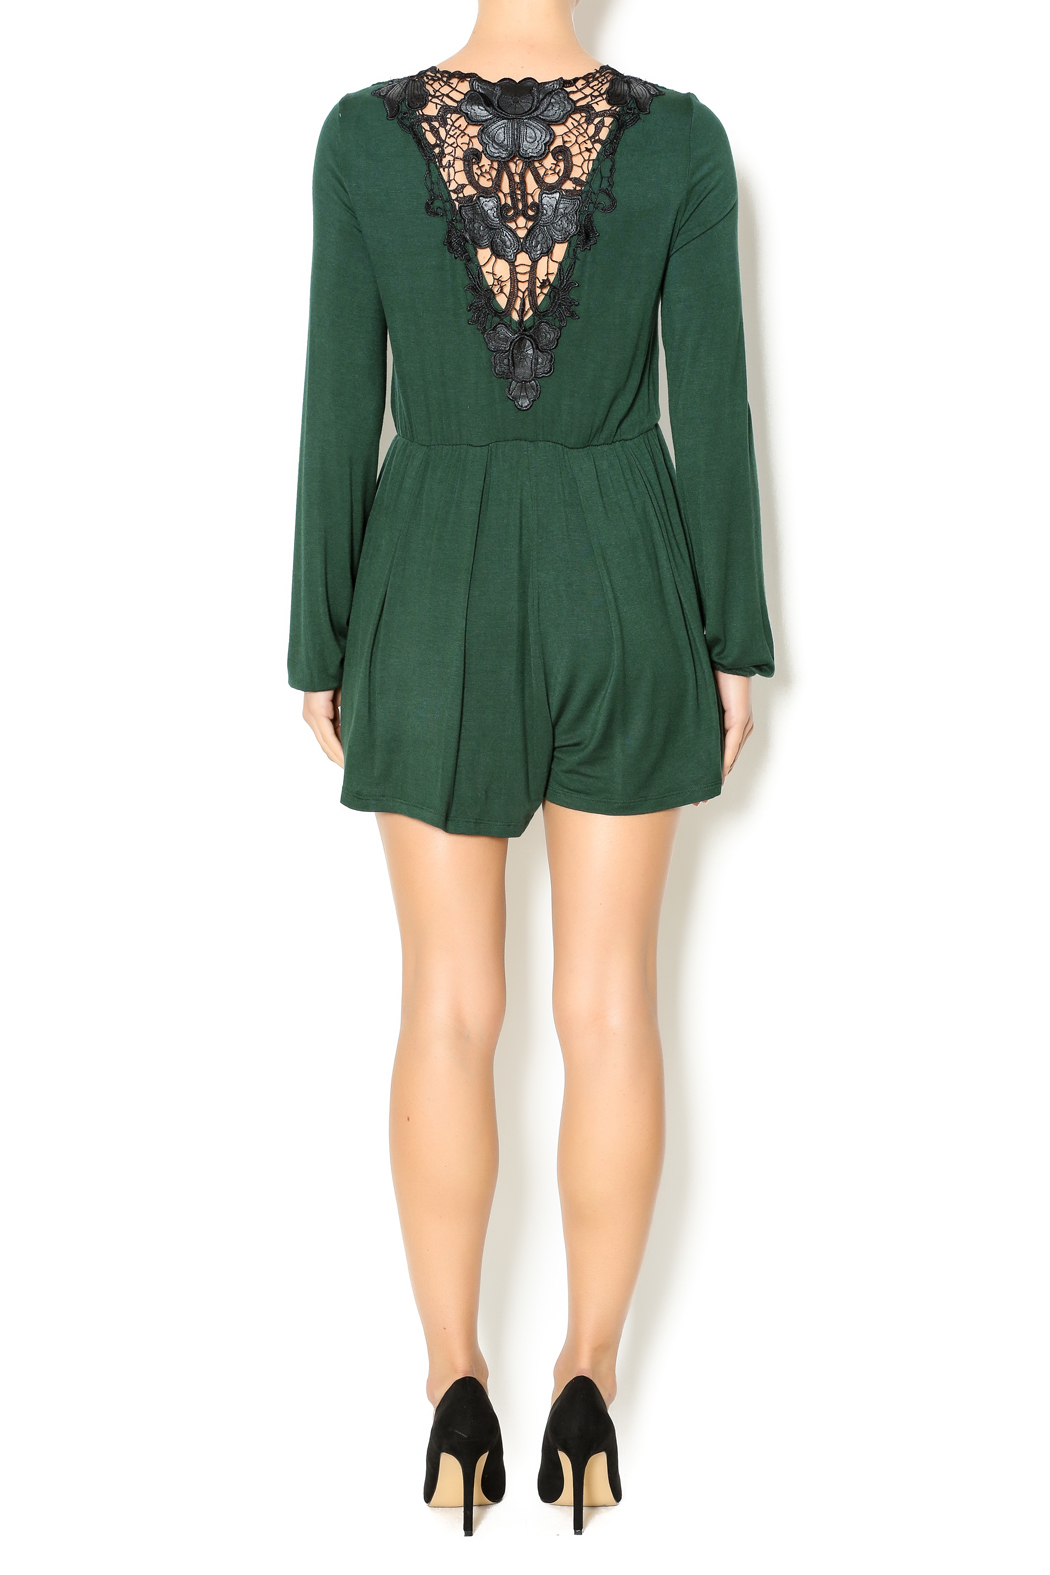 Double Zero Hunter Green Romper - Side Cropped Image